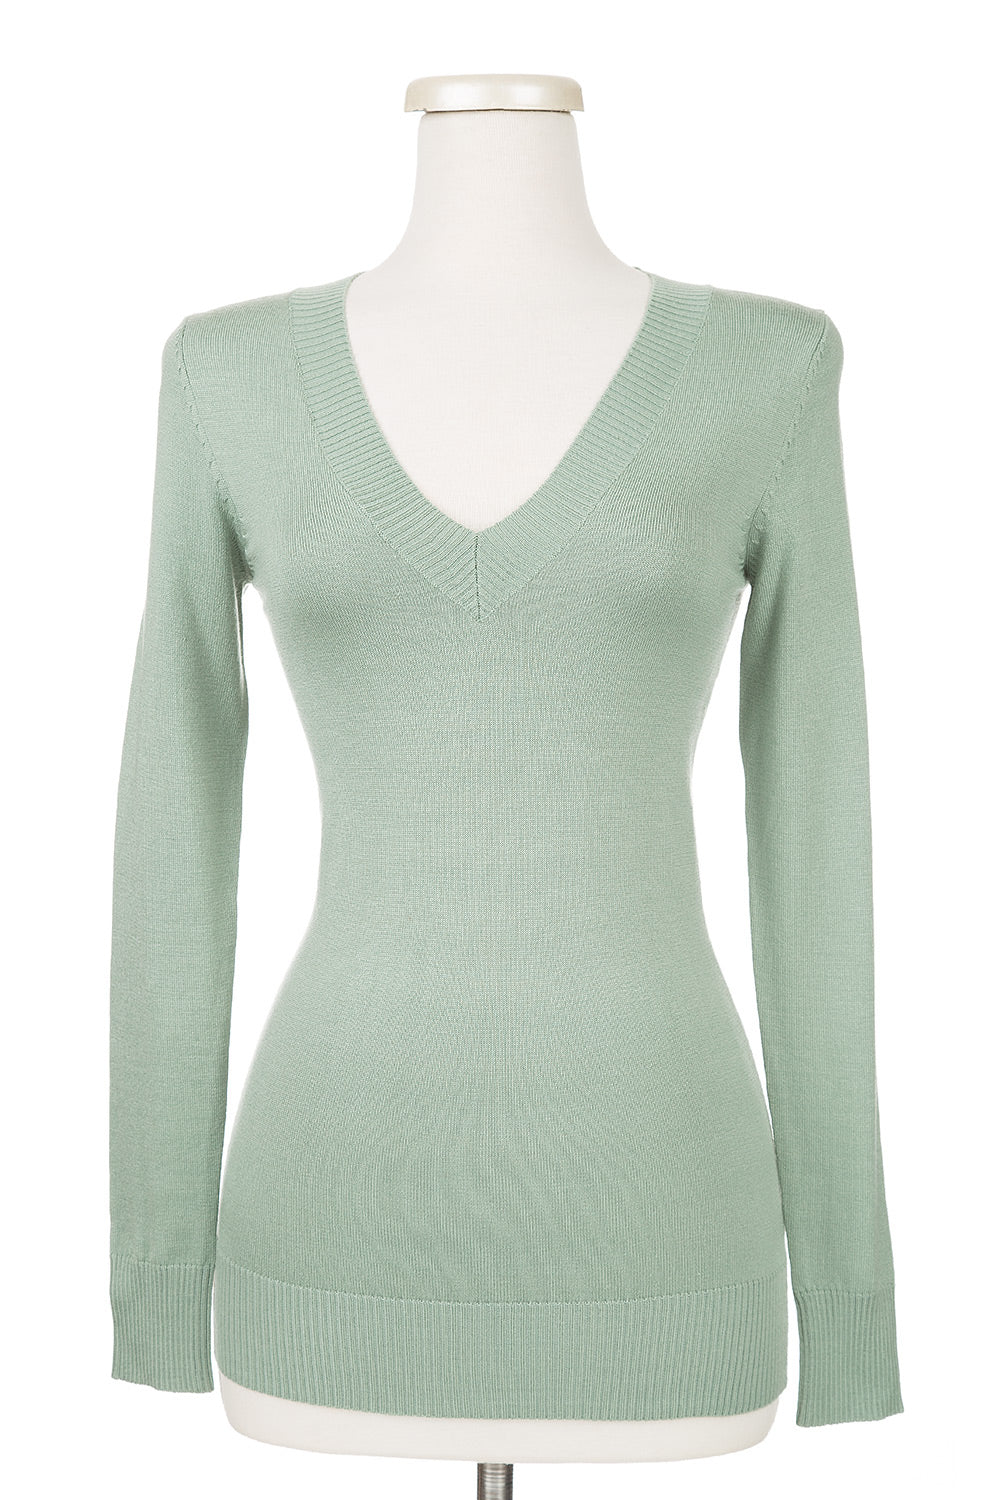 Type 2 Gentle Jade Sweater